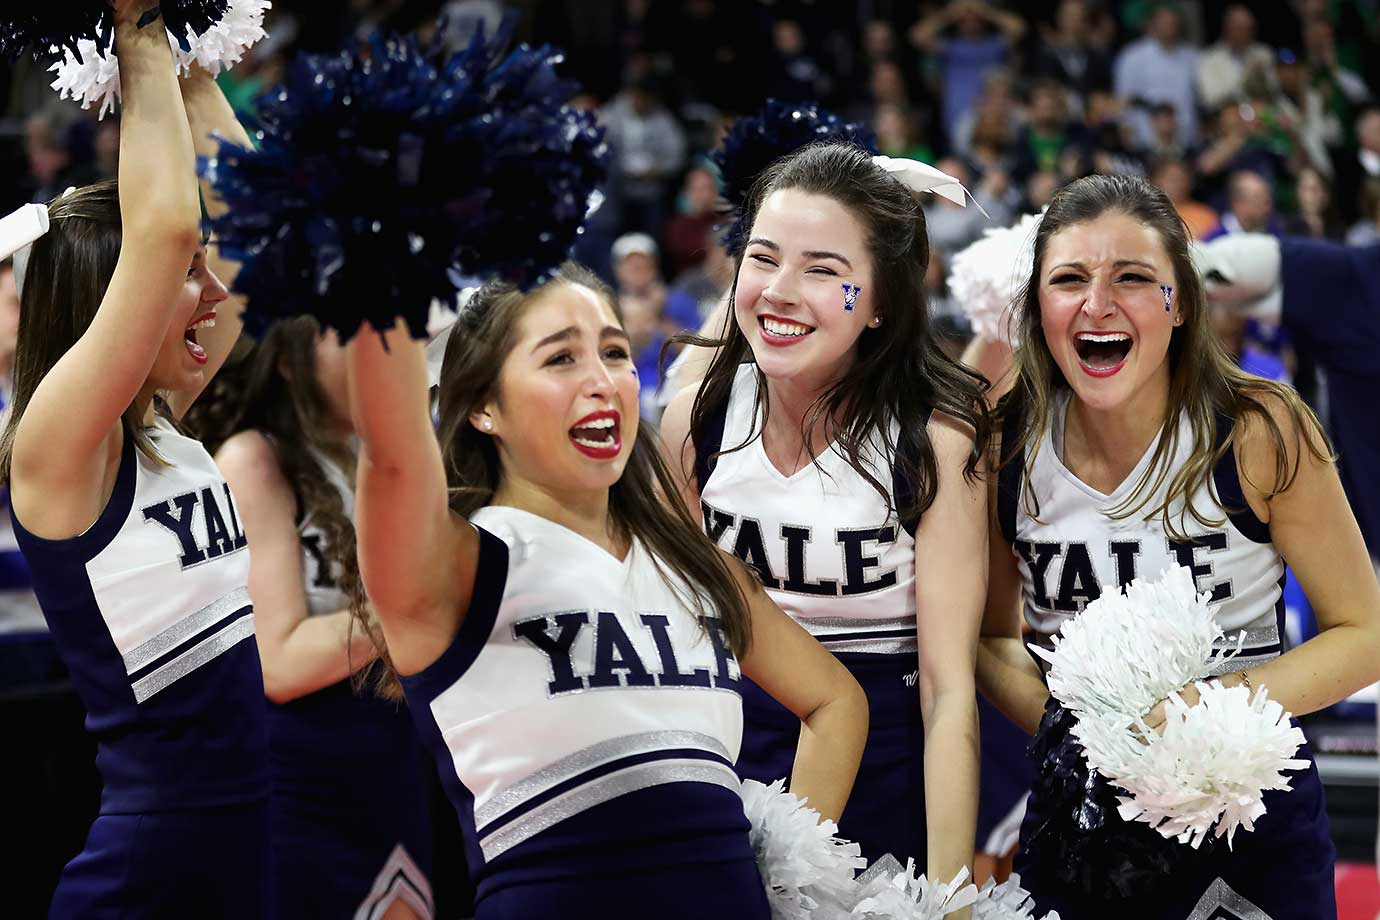 The Yale cheerleaders had plenty to be happy about after the Bulldogs knocked off Baylor in the NCAA Tournament.